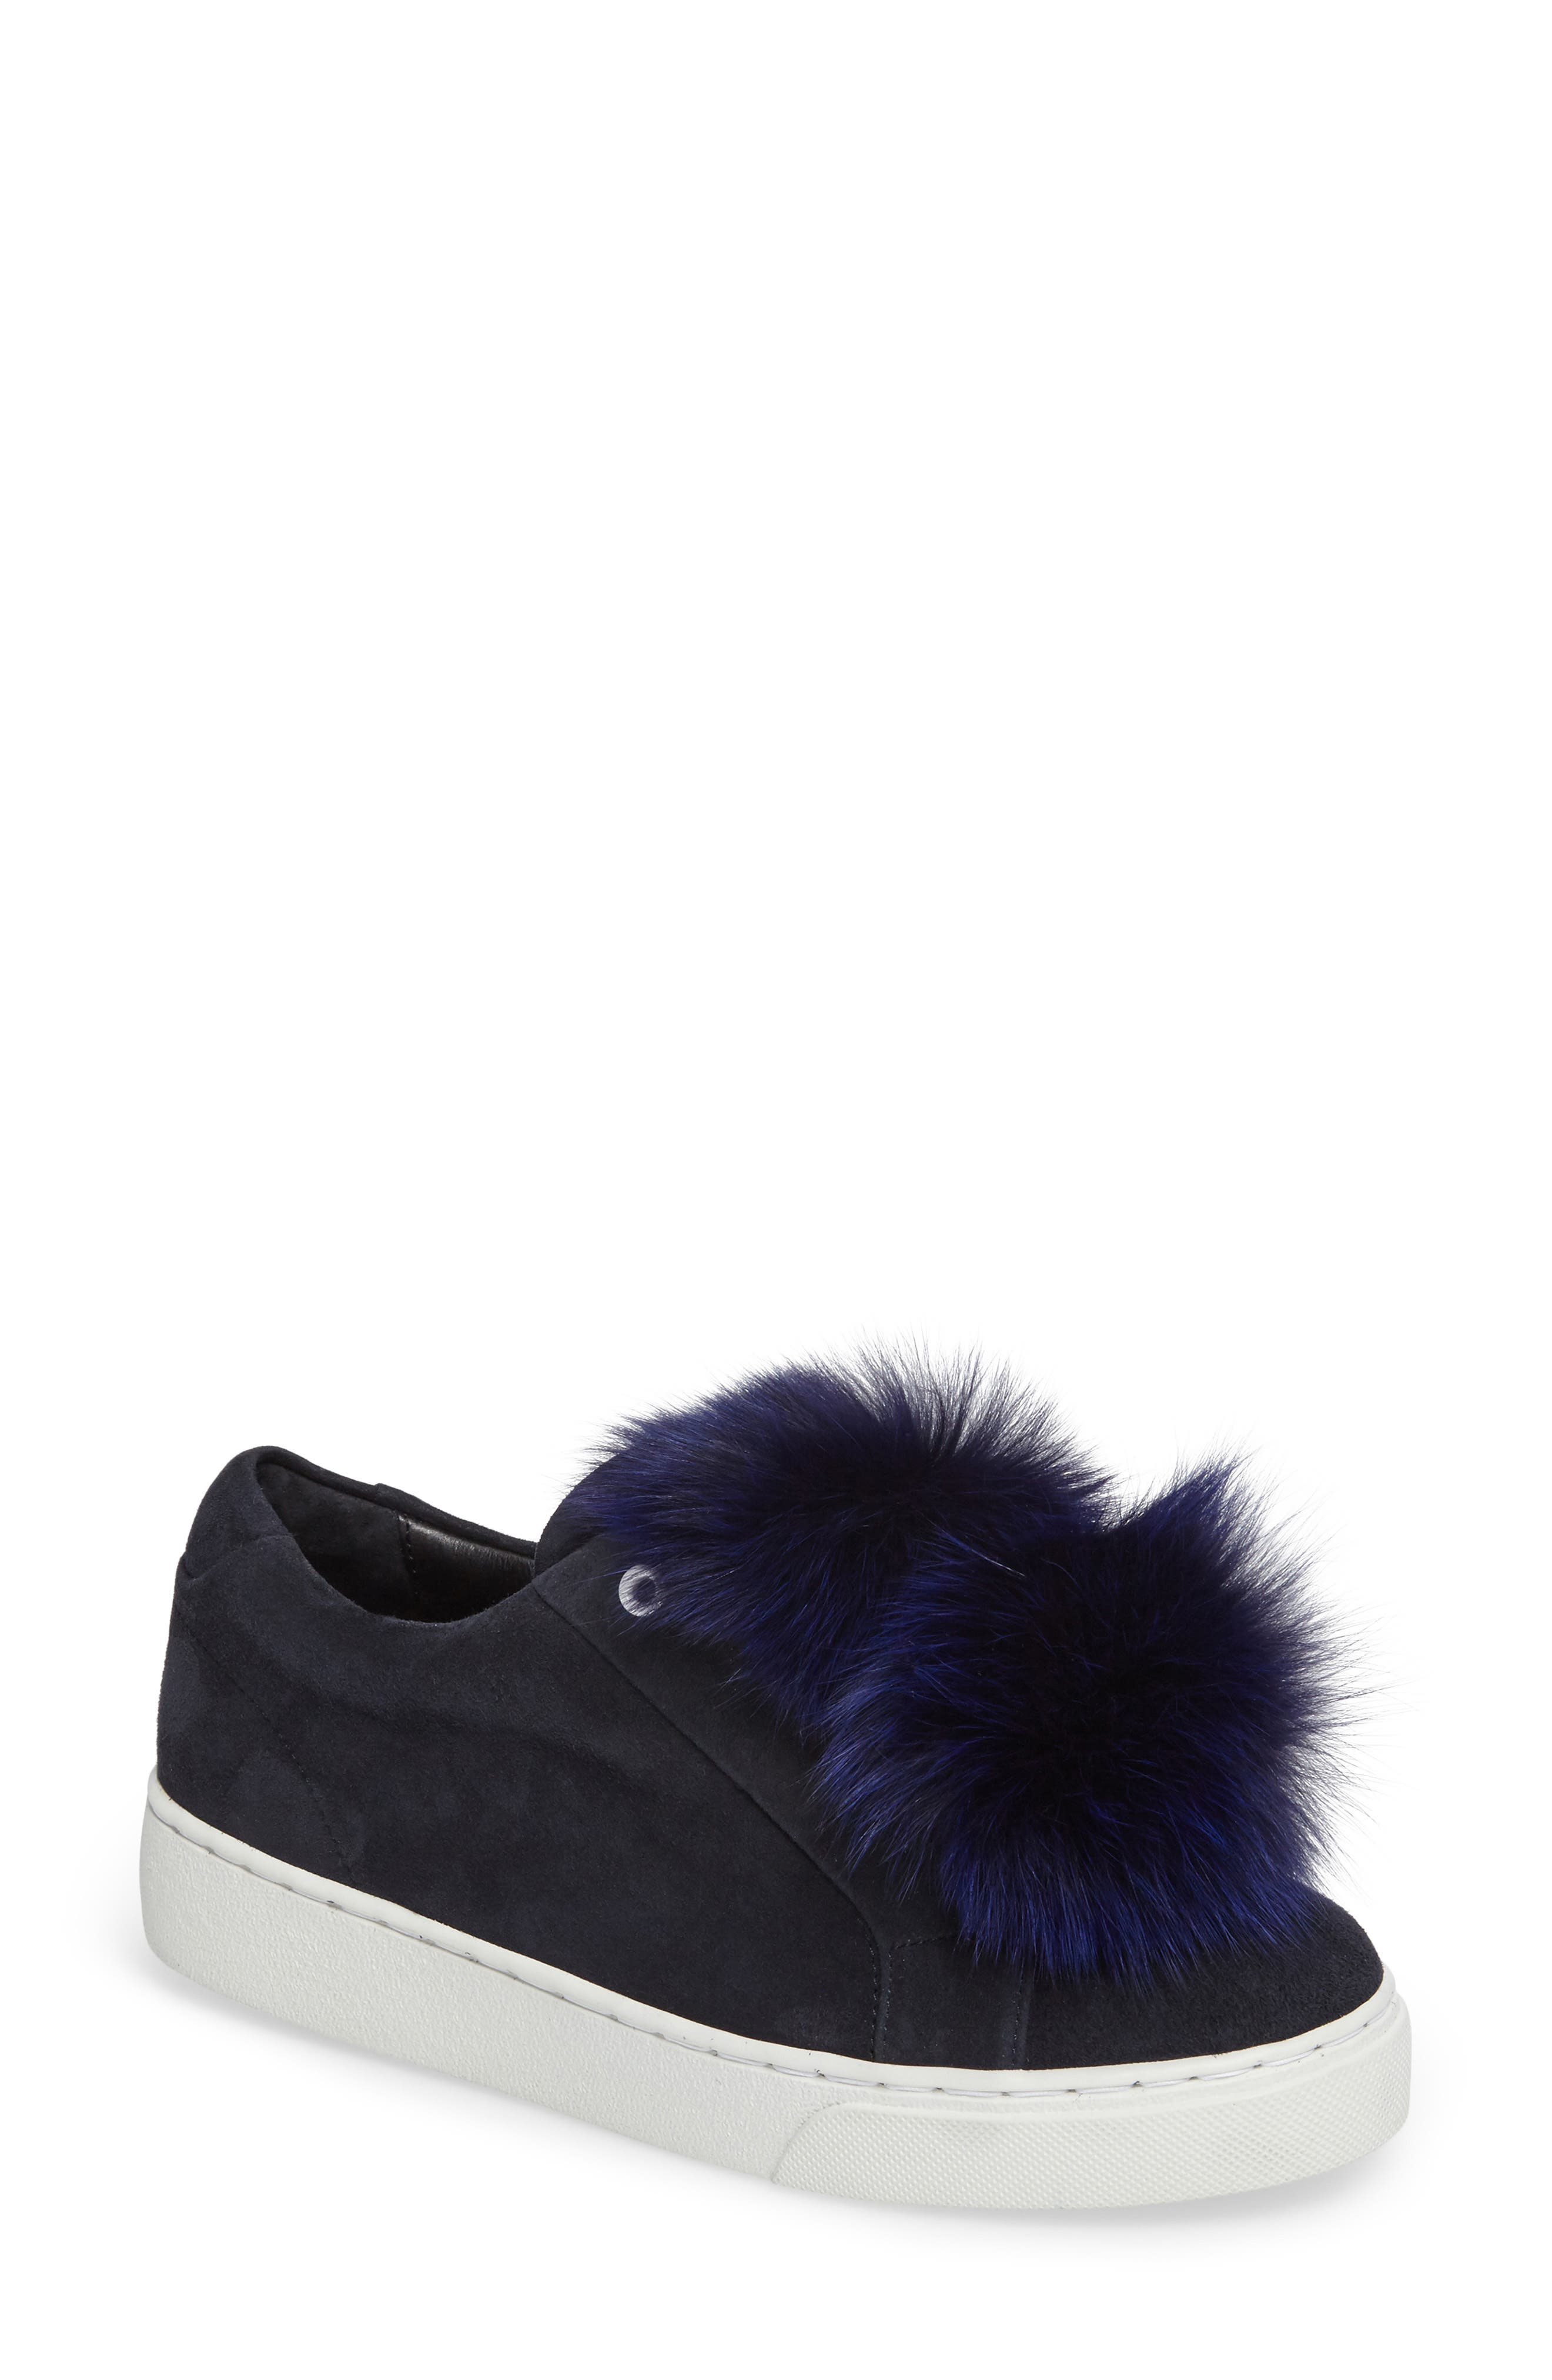 T Genuine Fox Fur Slip-On Sneaker,                             Main thumbnail 1, color,                             410